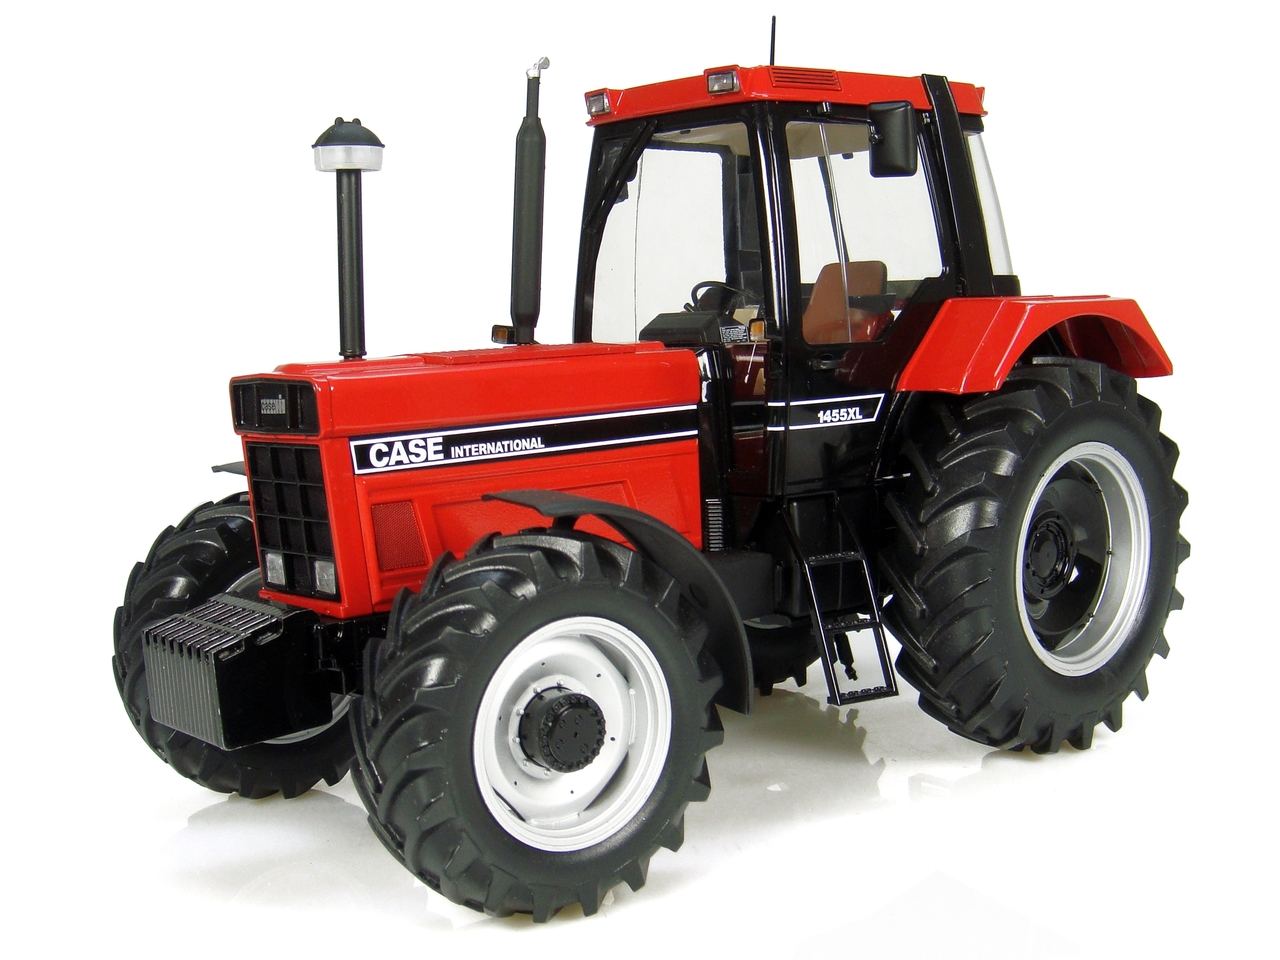 1986 Case IH 1455XL Tractor (2nd Generation) Limited Edition to 2000 pieces Worldwide 1/16 Diecast Model by Universal Hobbies